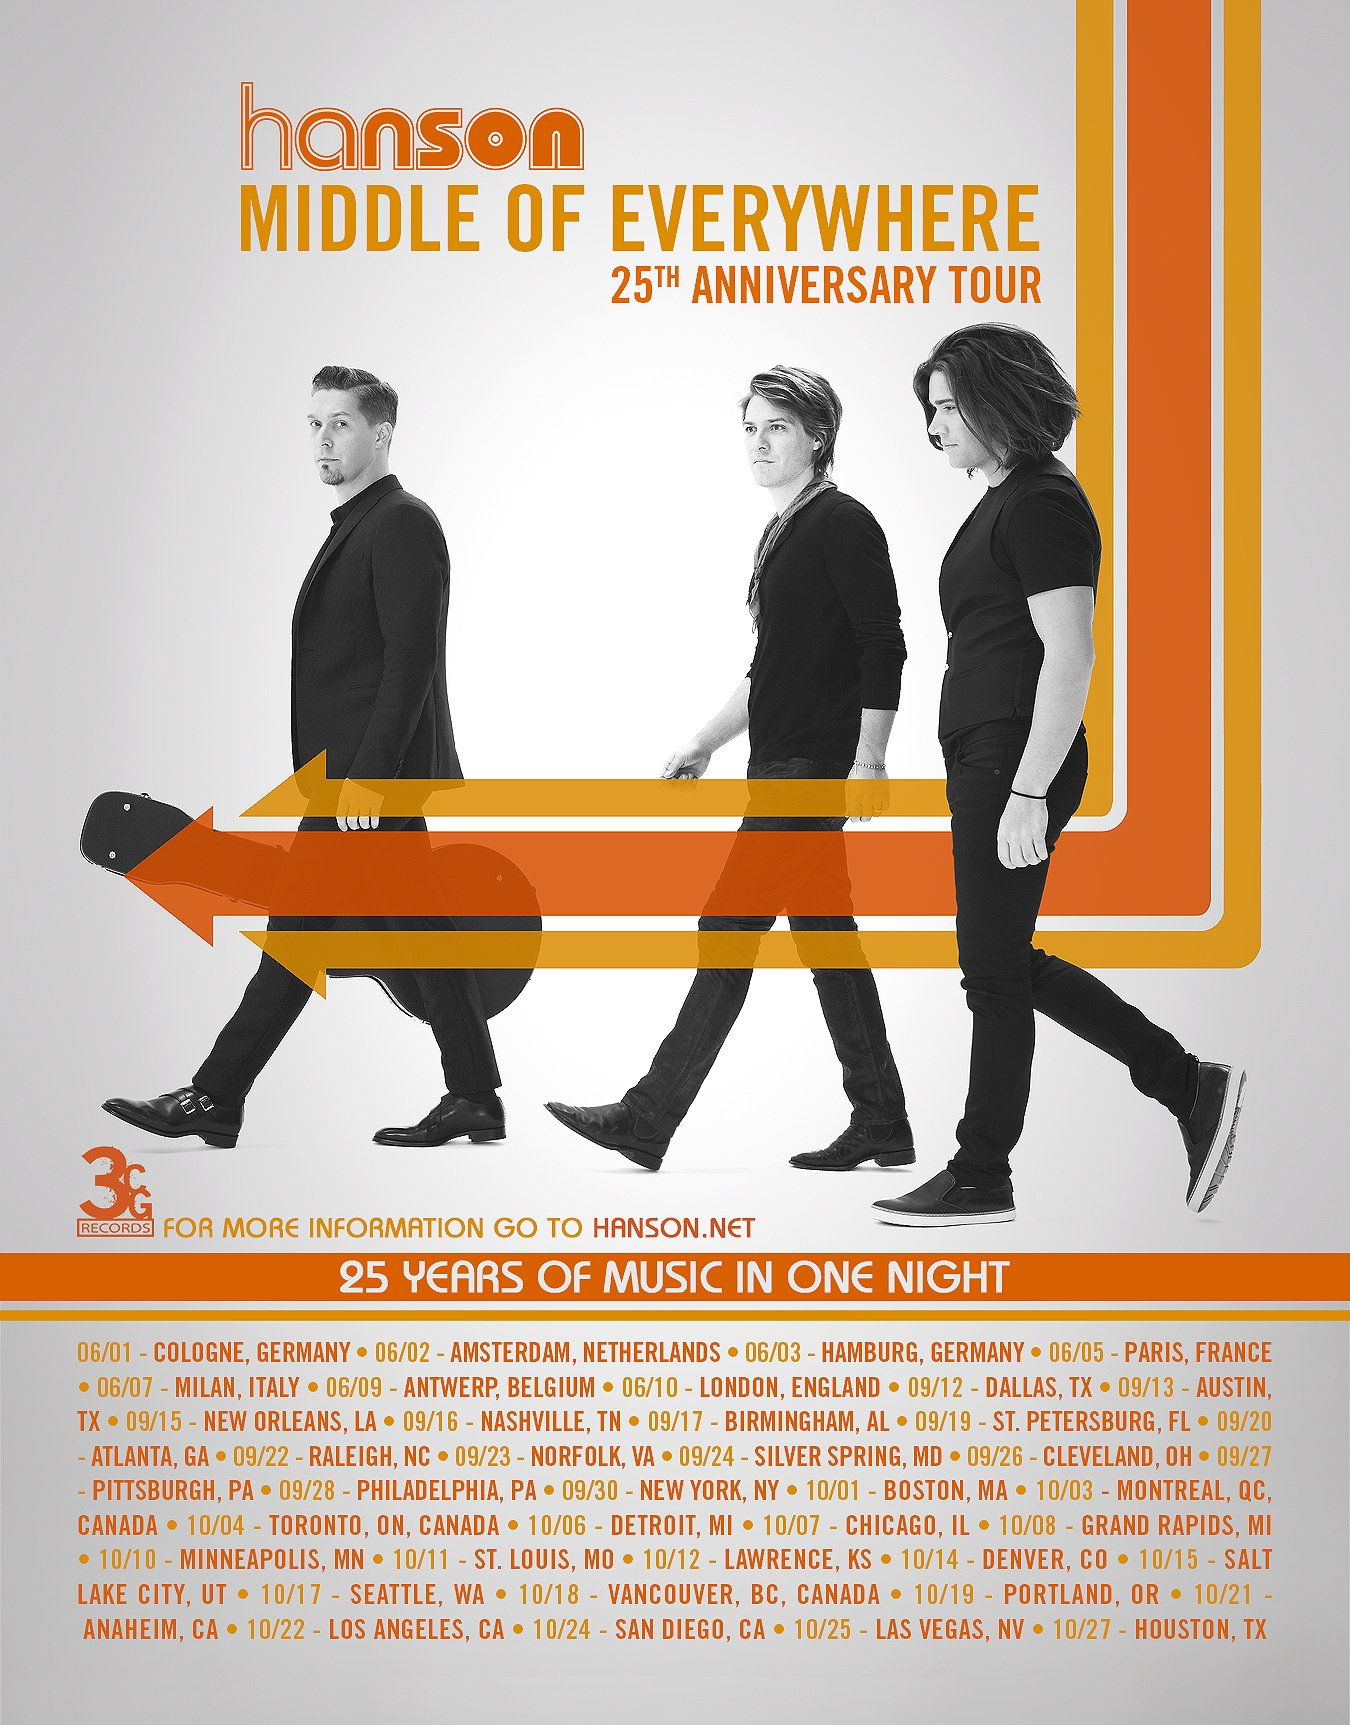 We just announced the first leg of our Middle of Everywhere Tour! https://t.co/jns2WgS7ut https://t.co/d6qMhXOHGd